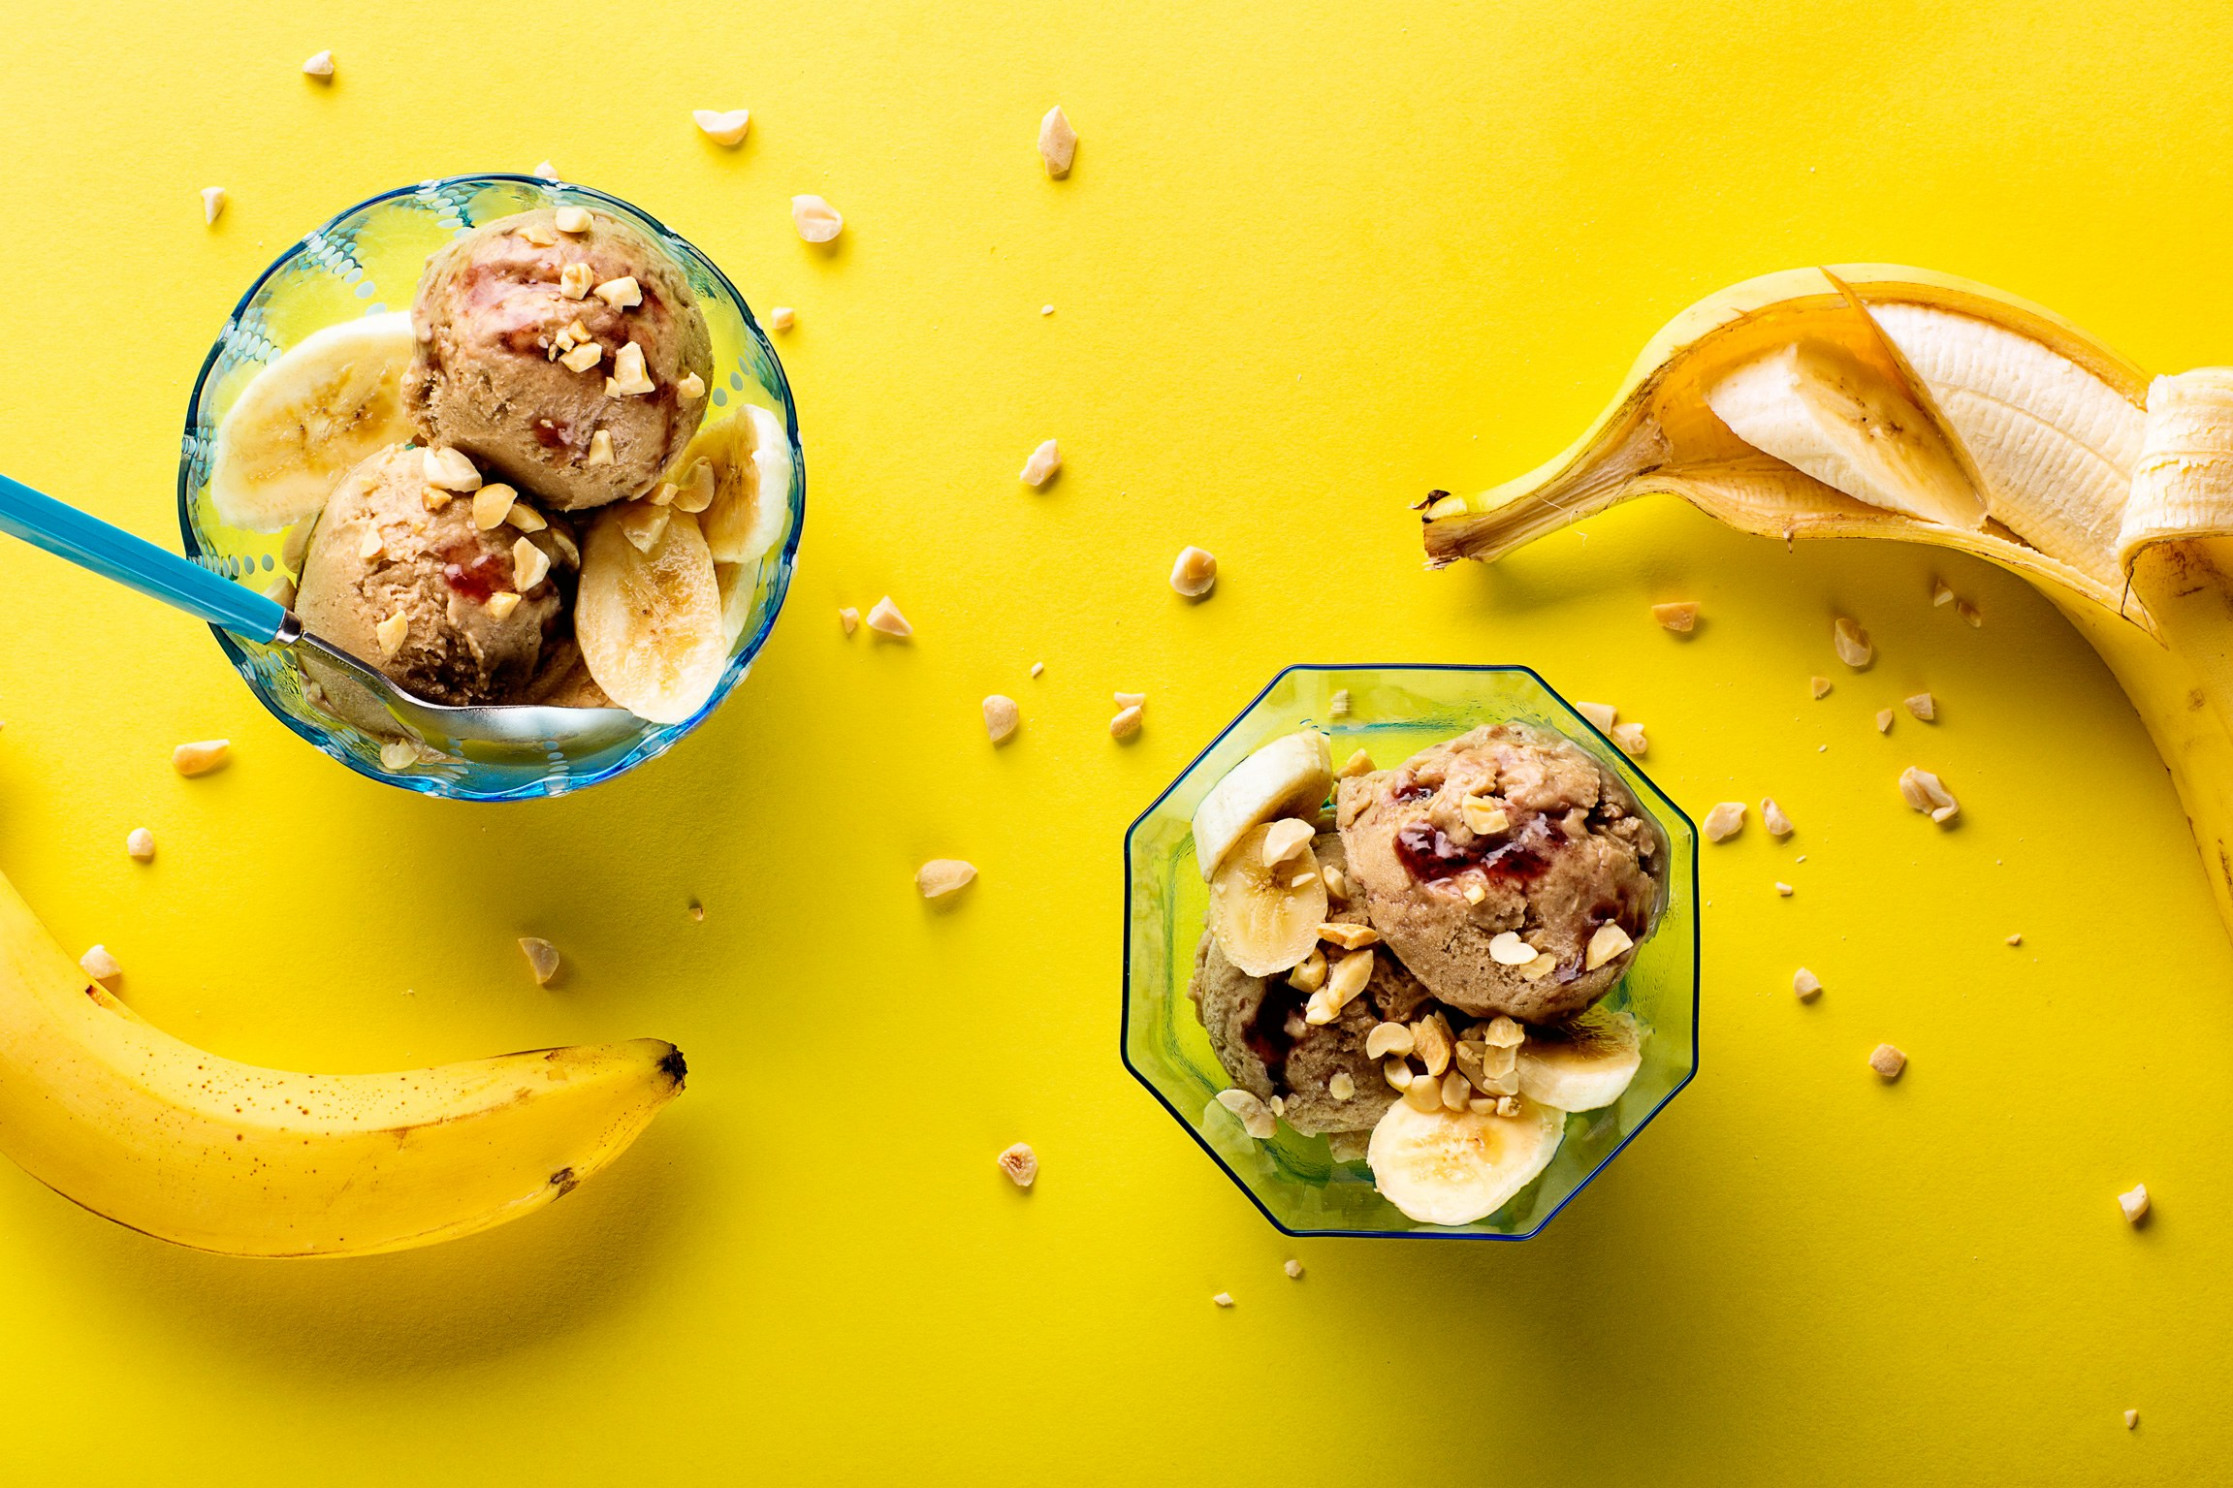 Healthy Recipes Using Your Overripe Bananas: Part 2 | Life ..